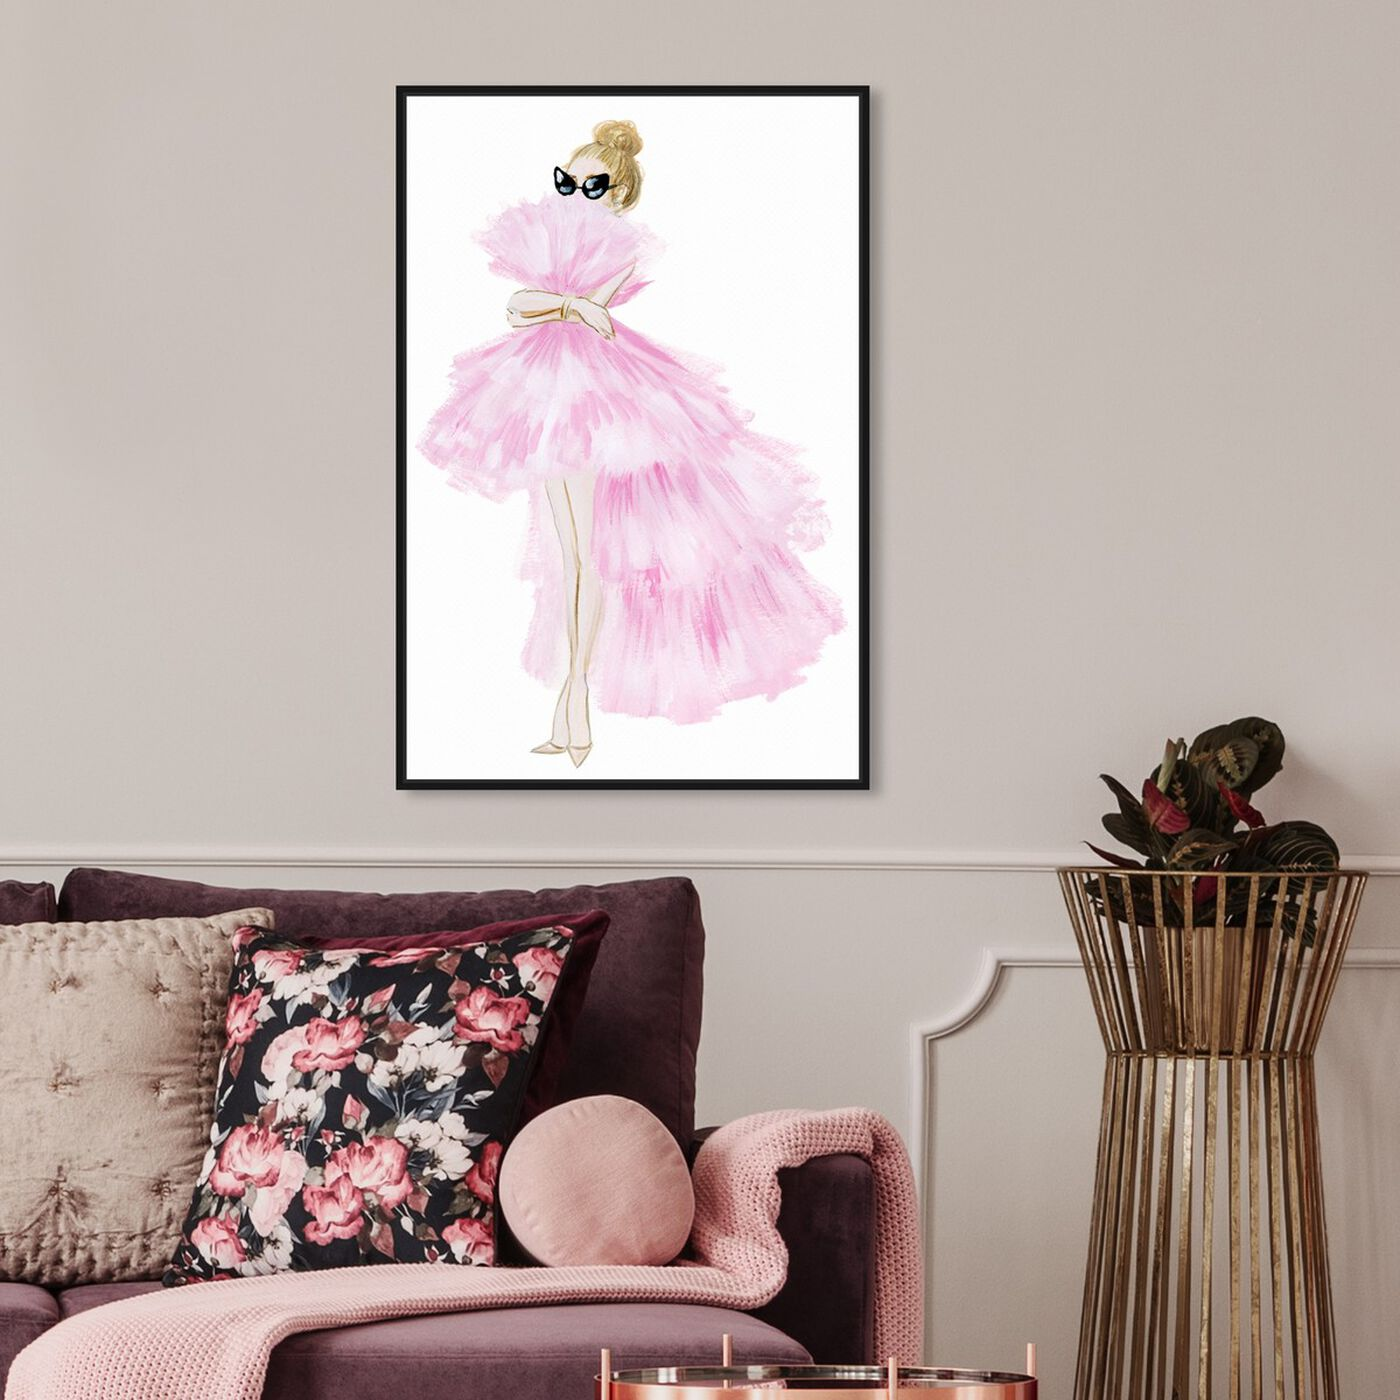 Hanging view of Pink Tutu Dress featuring fashion and glam and dress art.